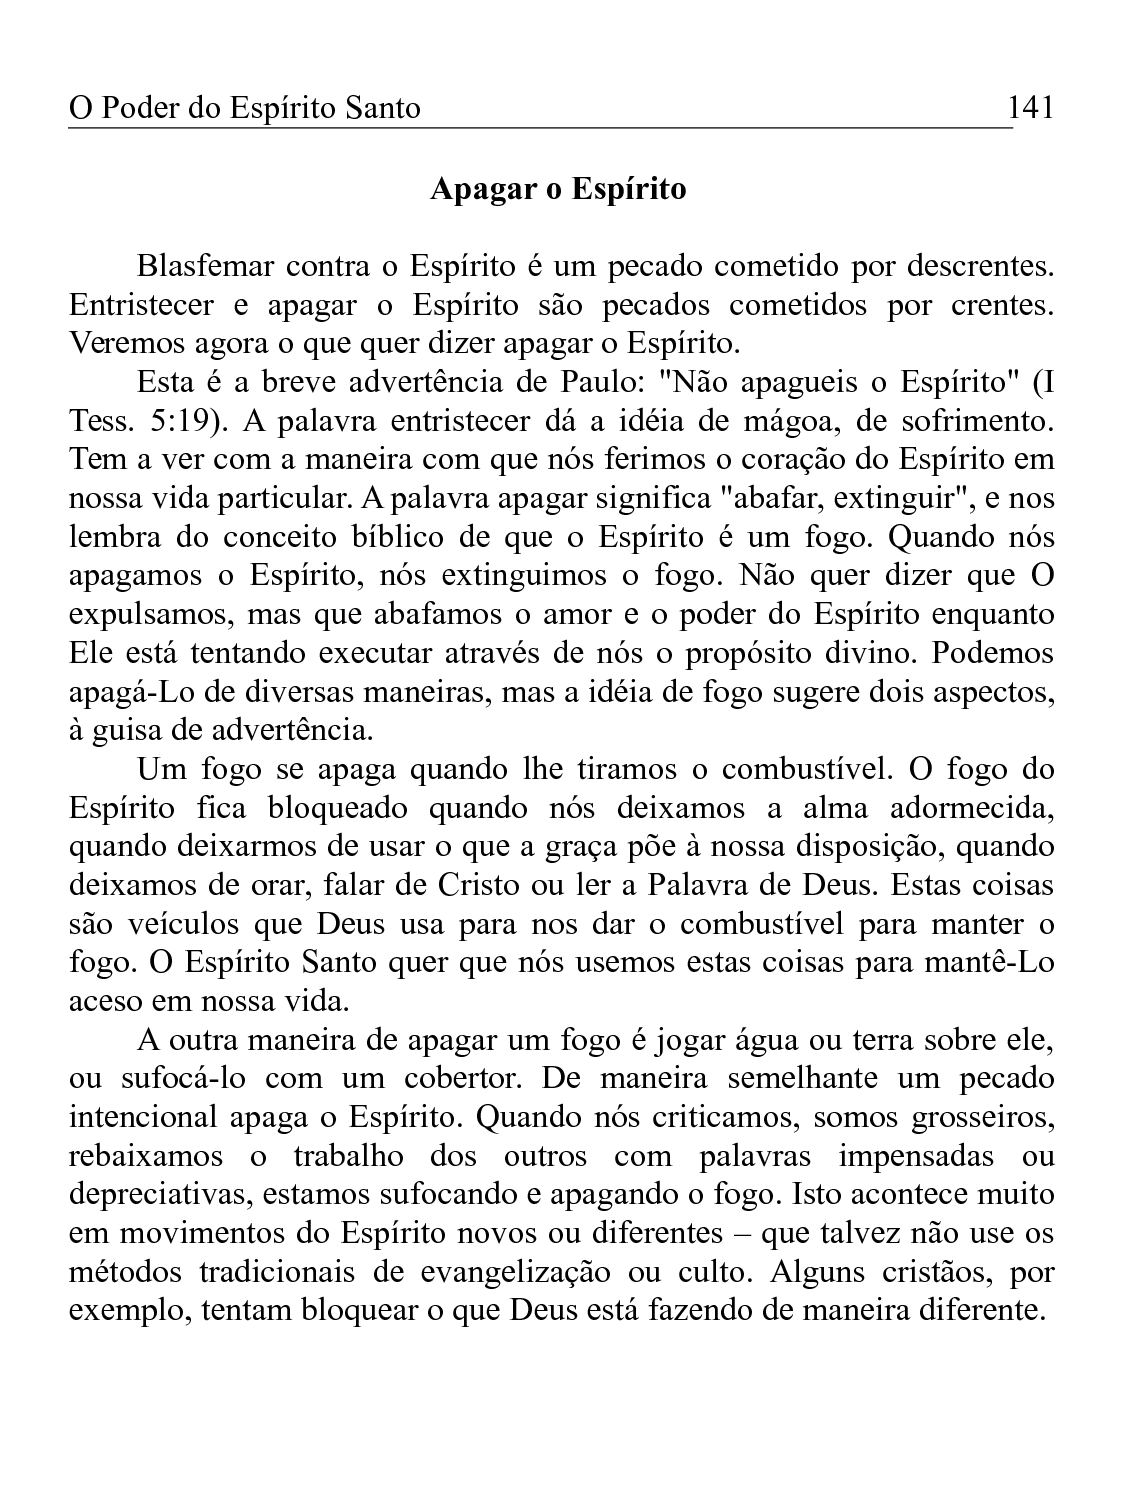 Page 141